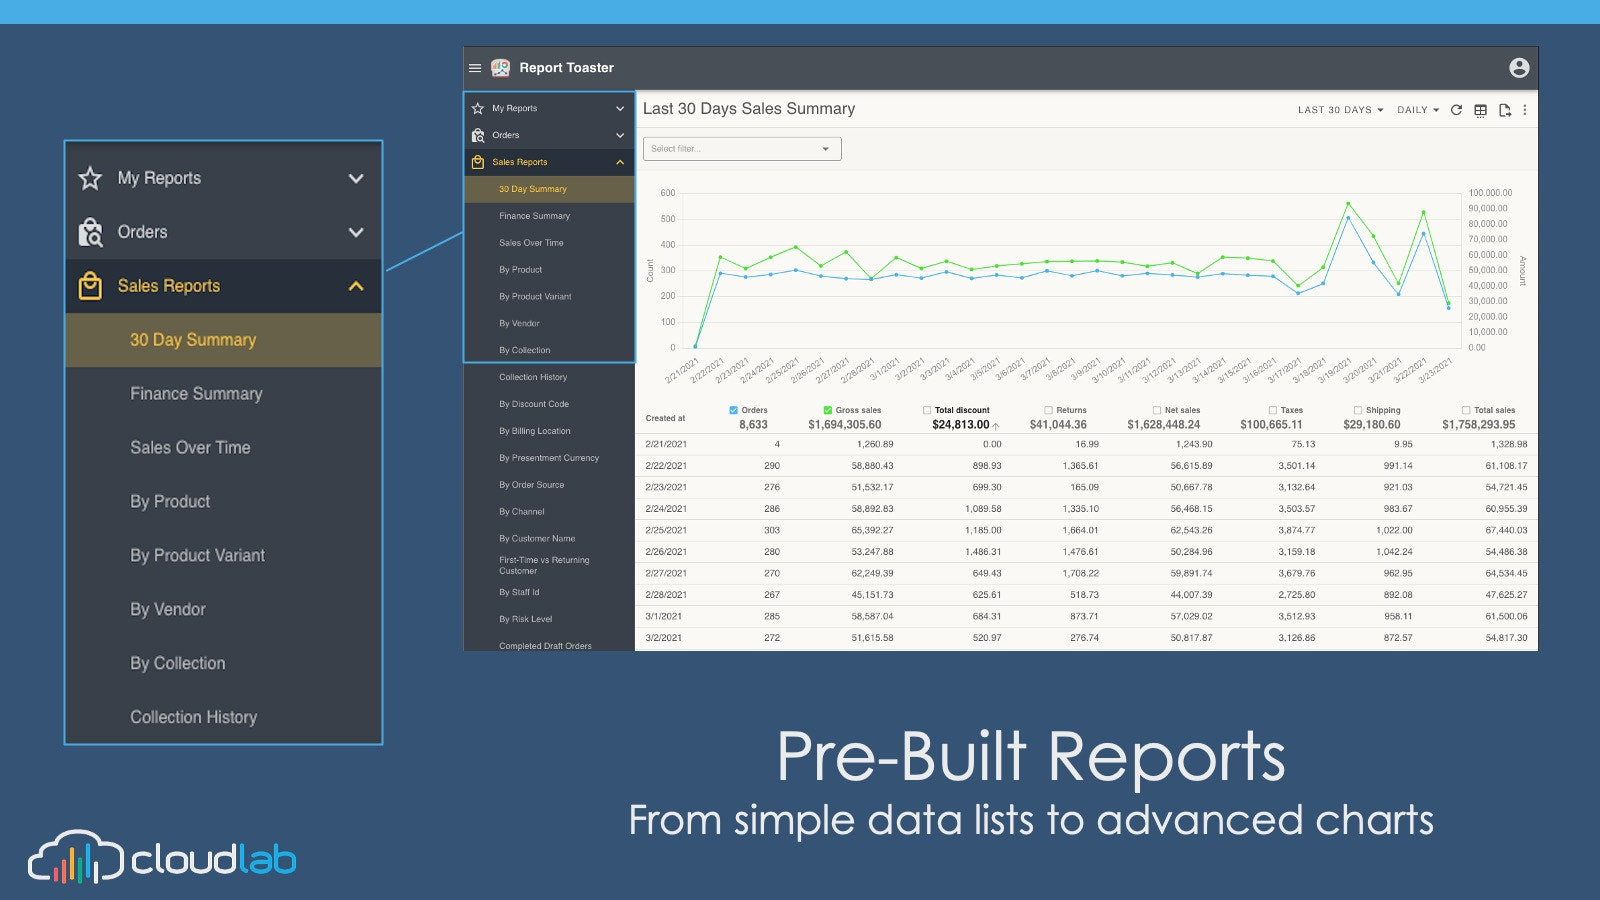 Pre-Built Reports- From simple product lists to sales charts